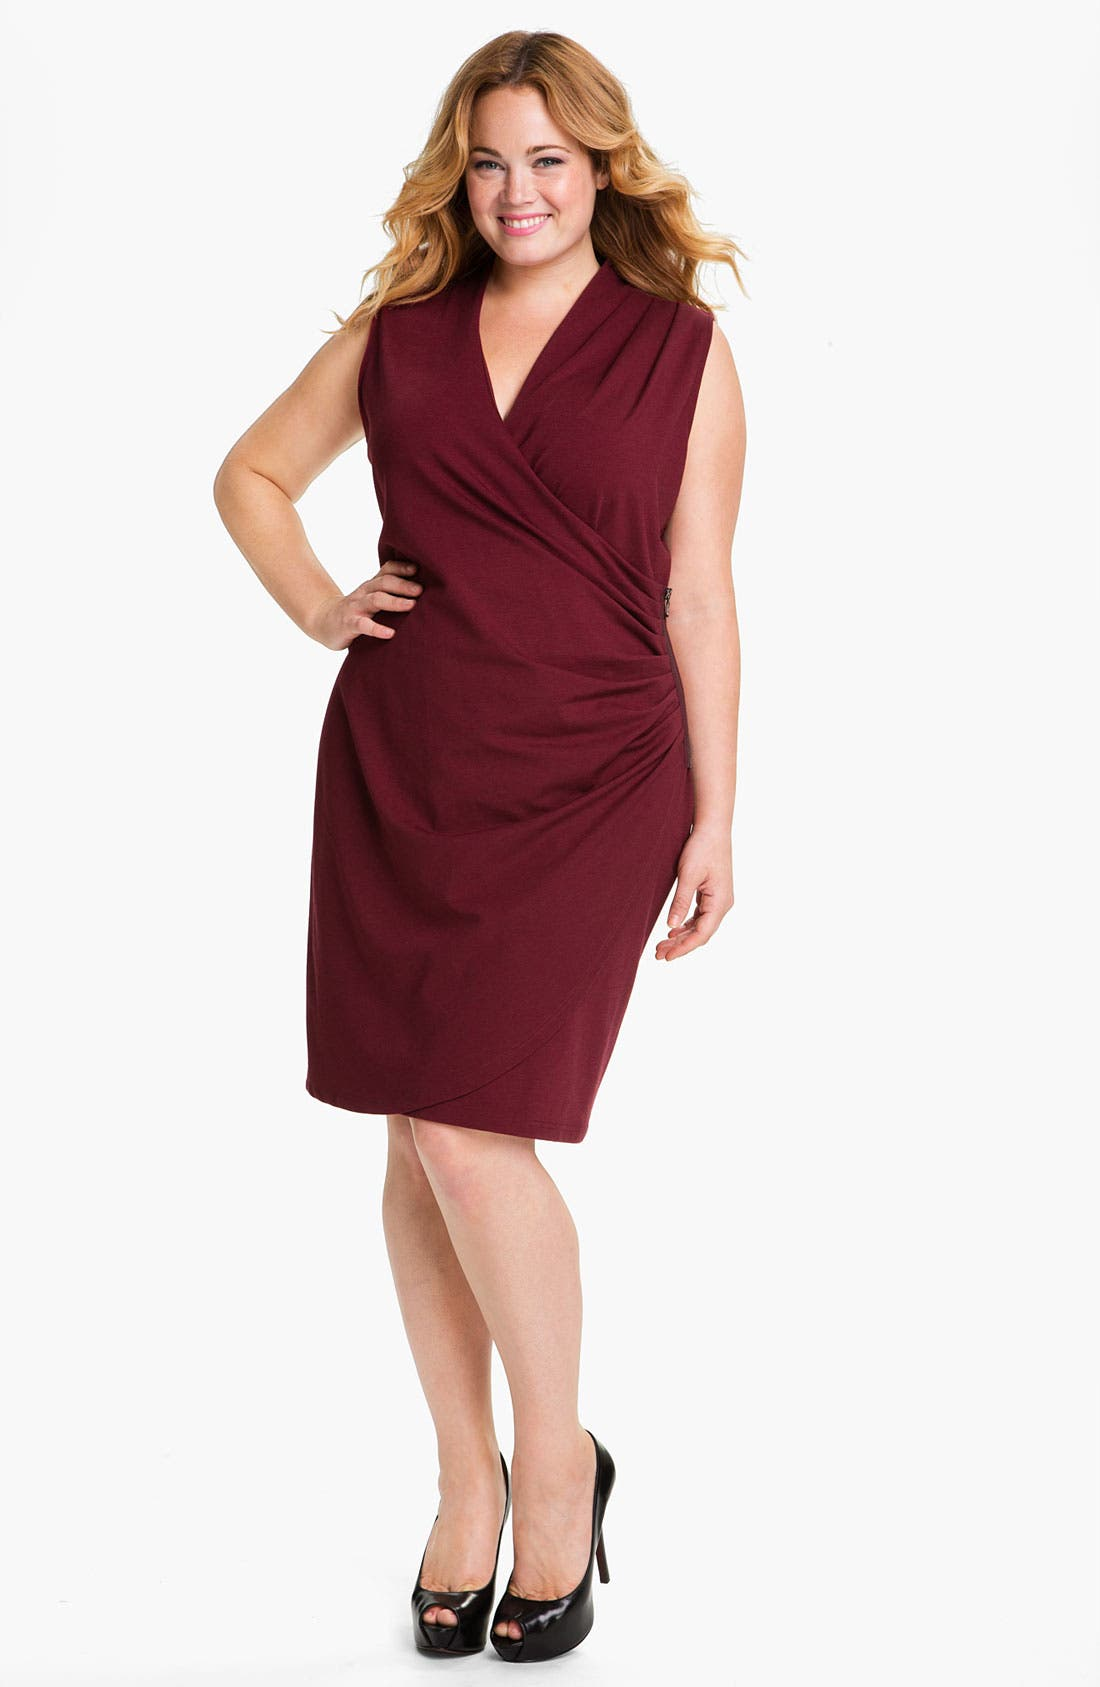 Alternate Image 1 Selected - Kenneth Cole New York 'Lindsey' Sleeveless Ponte Knit Sheath Dress (Plus)